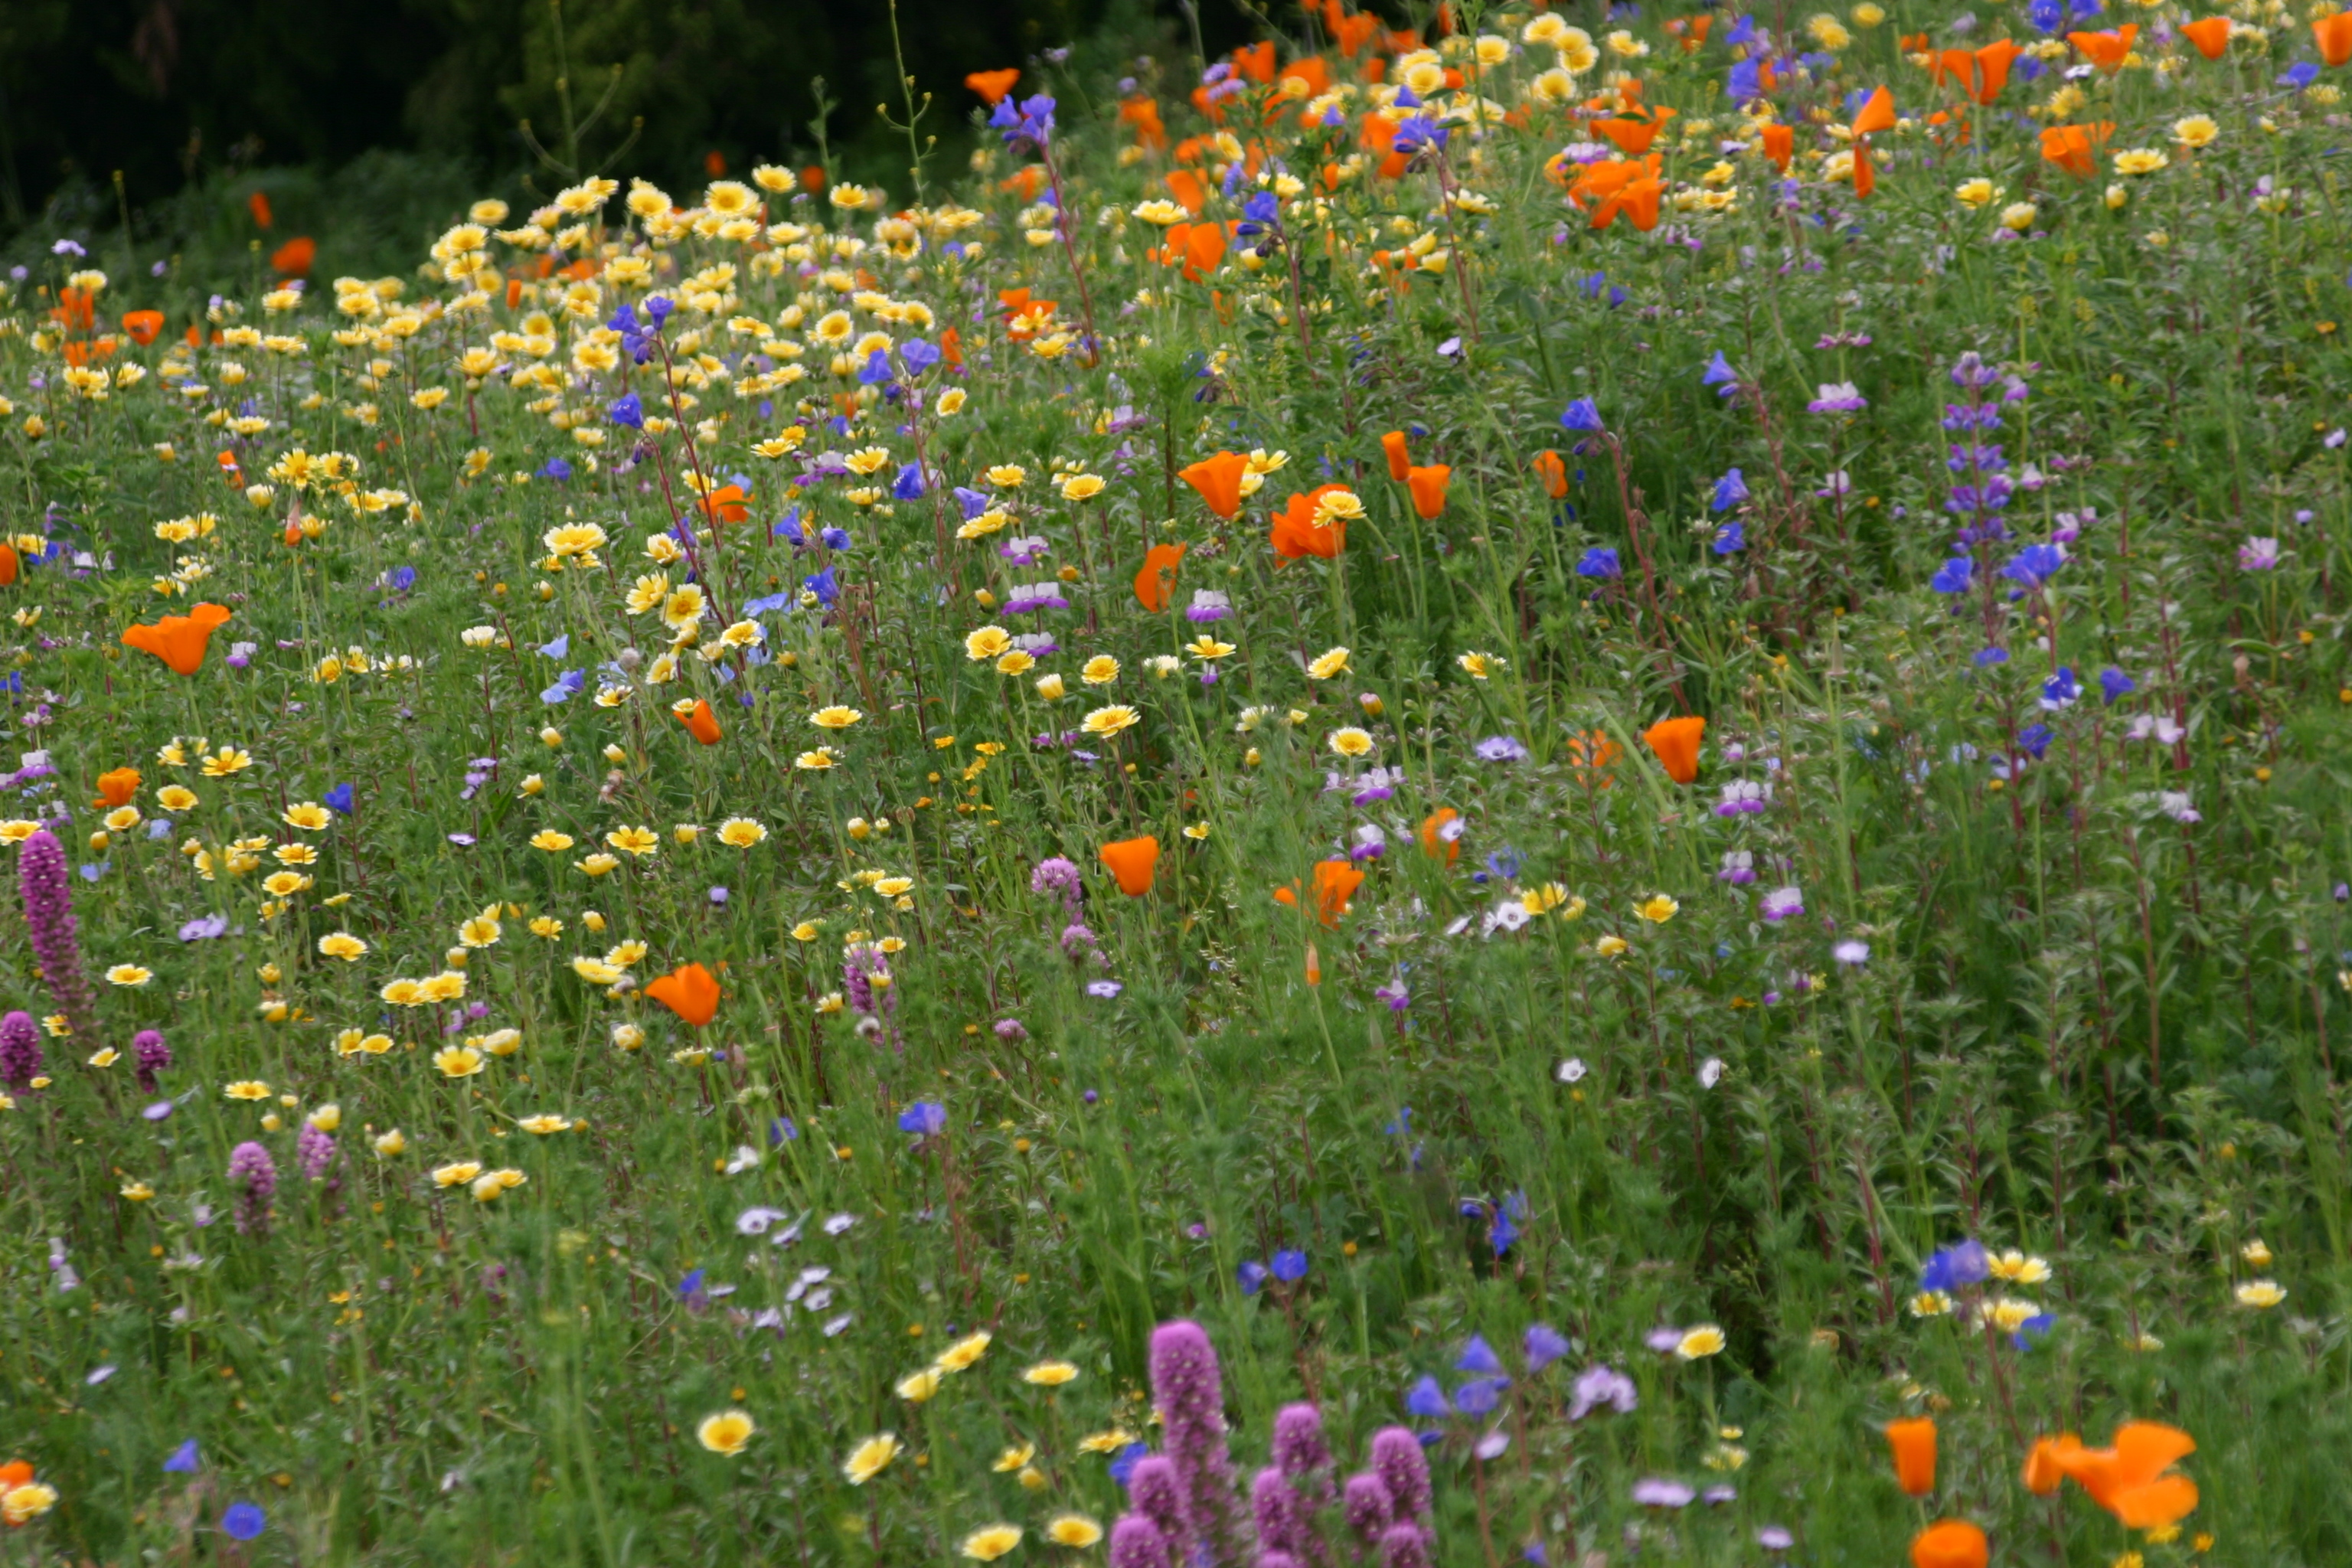 Wildflowers california native plant society blog a small portion of a 15 acre wildflower meadow created by the author in fallbrook in mightylinksfo